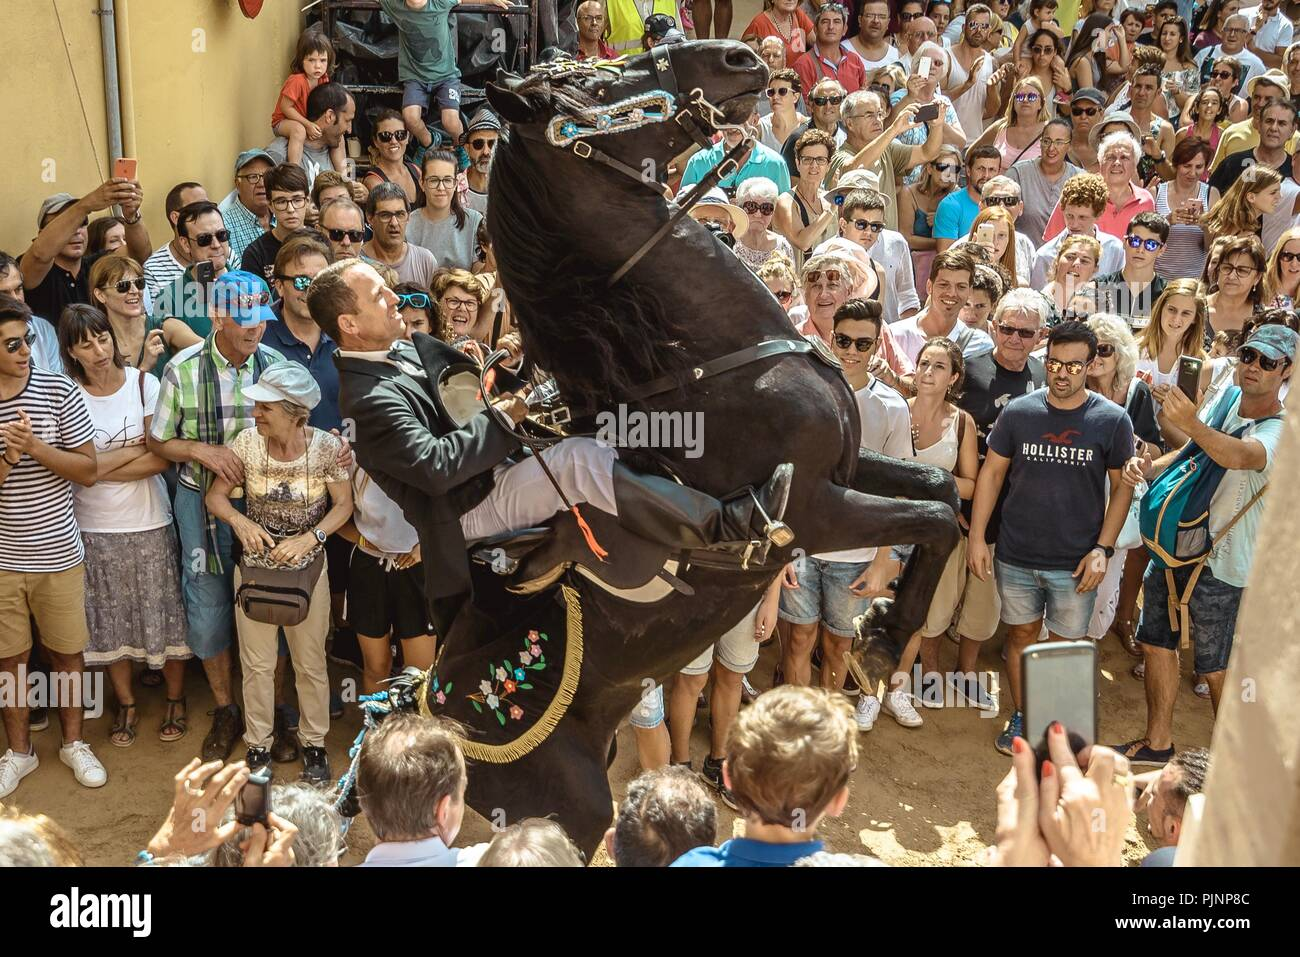 Mahon, Spain. 8 September, 2018:  A 'caixer' (horse rider) rears up on his horse in between the cheering crowd prior to the 'Jaleo' of the traditional Gracia Festival in Mahon, celebrating its patron, Our Lady of Grace Credit: Matthias Oesterle/Alamy Live News - Stock Image